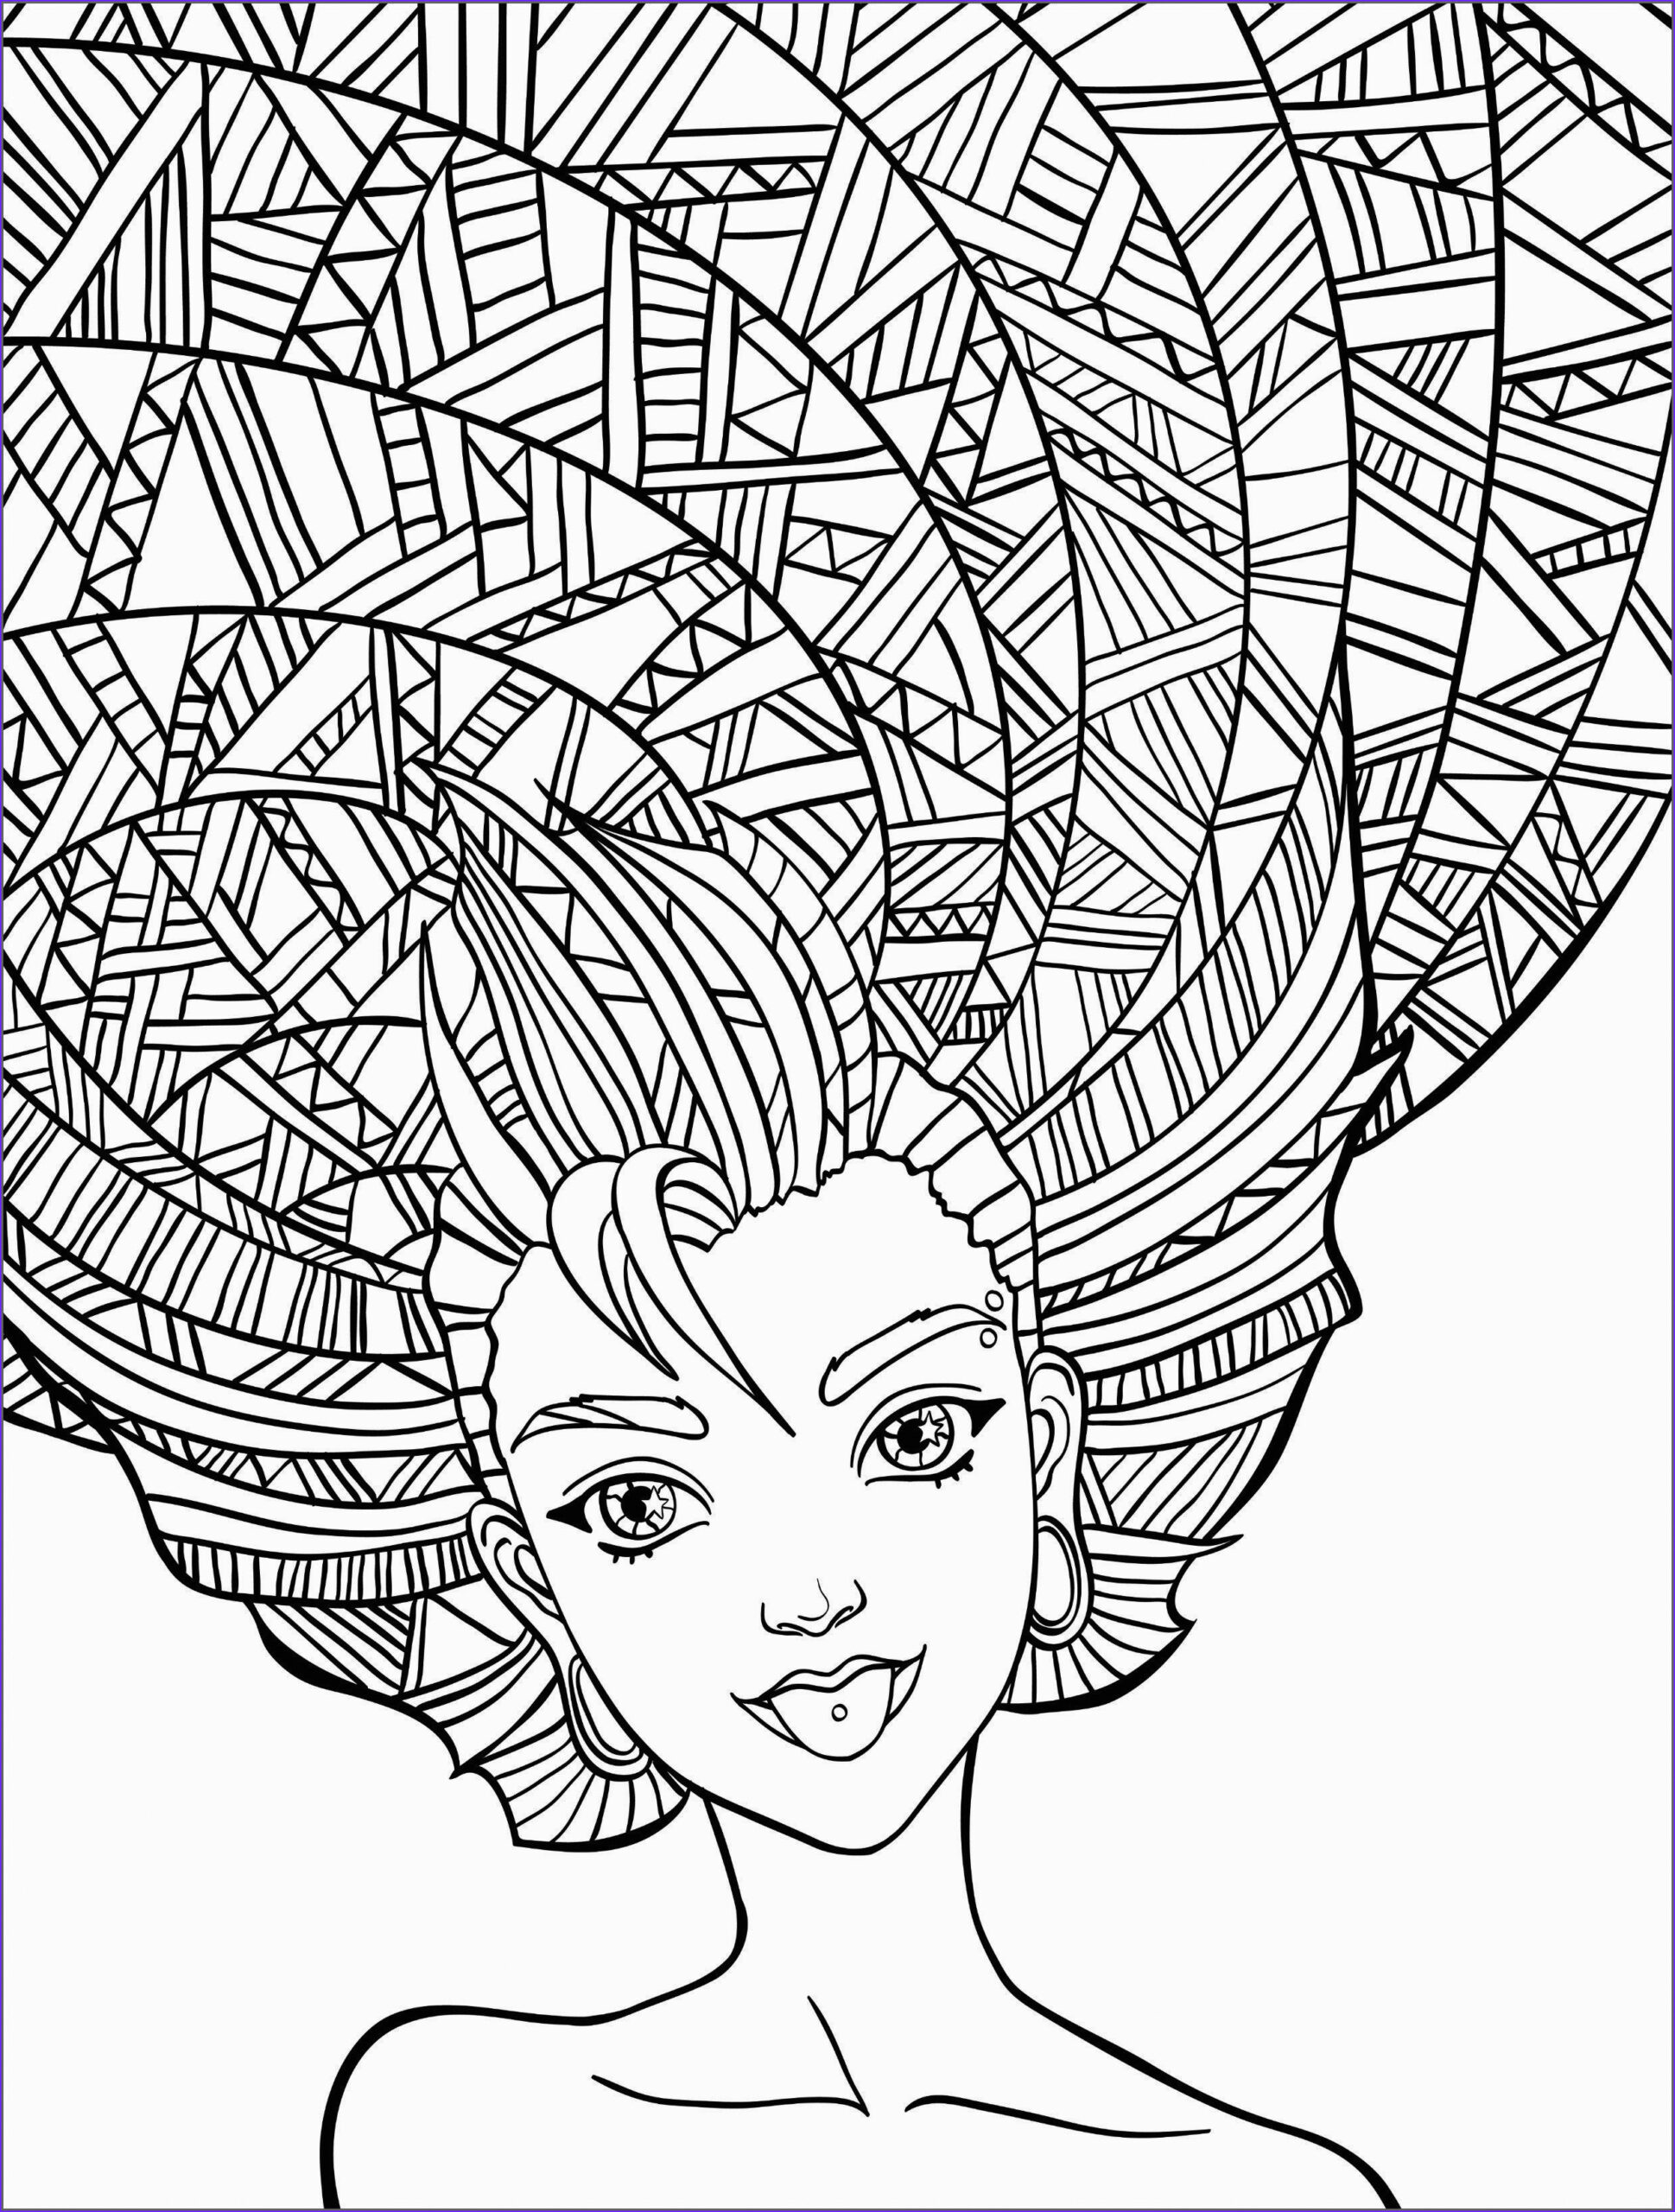 Coloring Books for Adults Elegant Photography Coloring Pages for Adults Best Coloring Pages for Kids